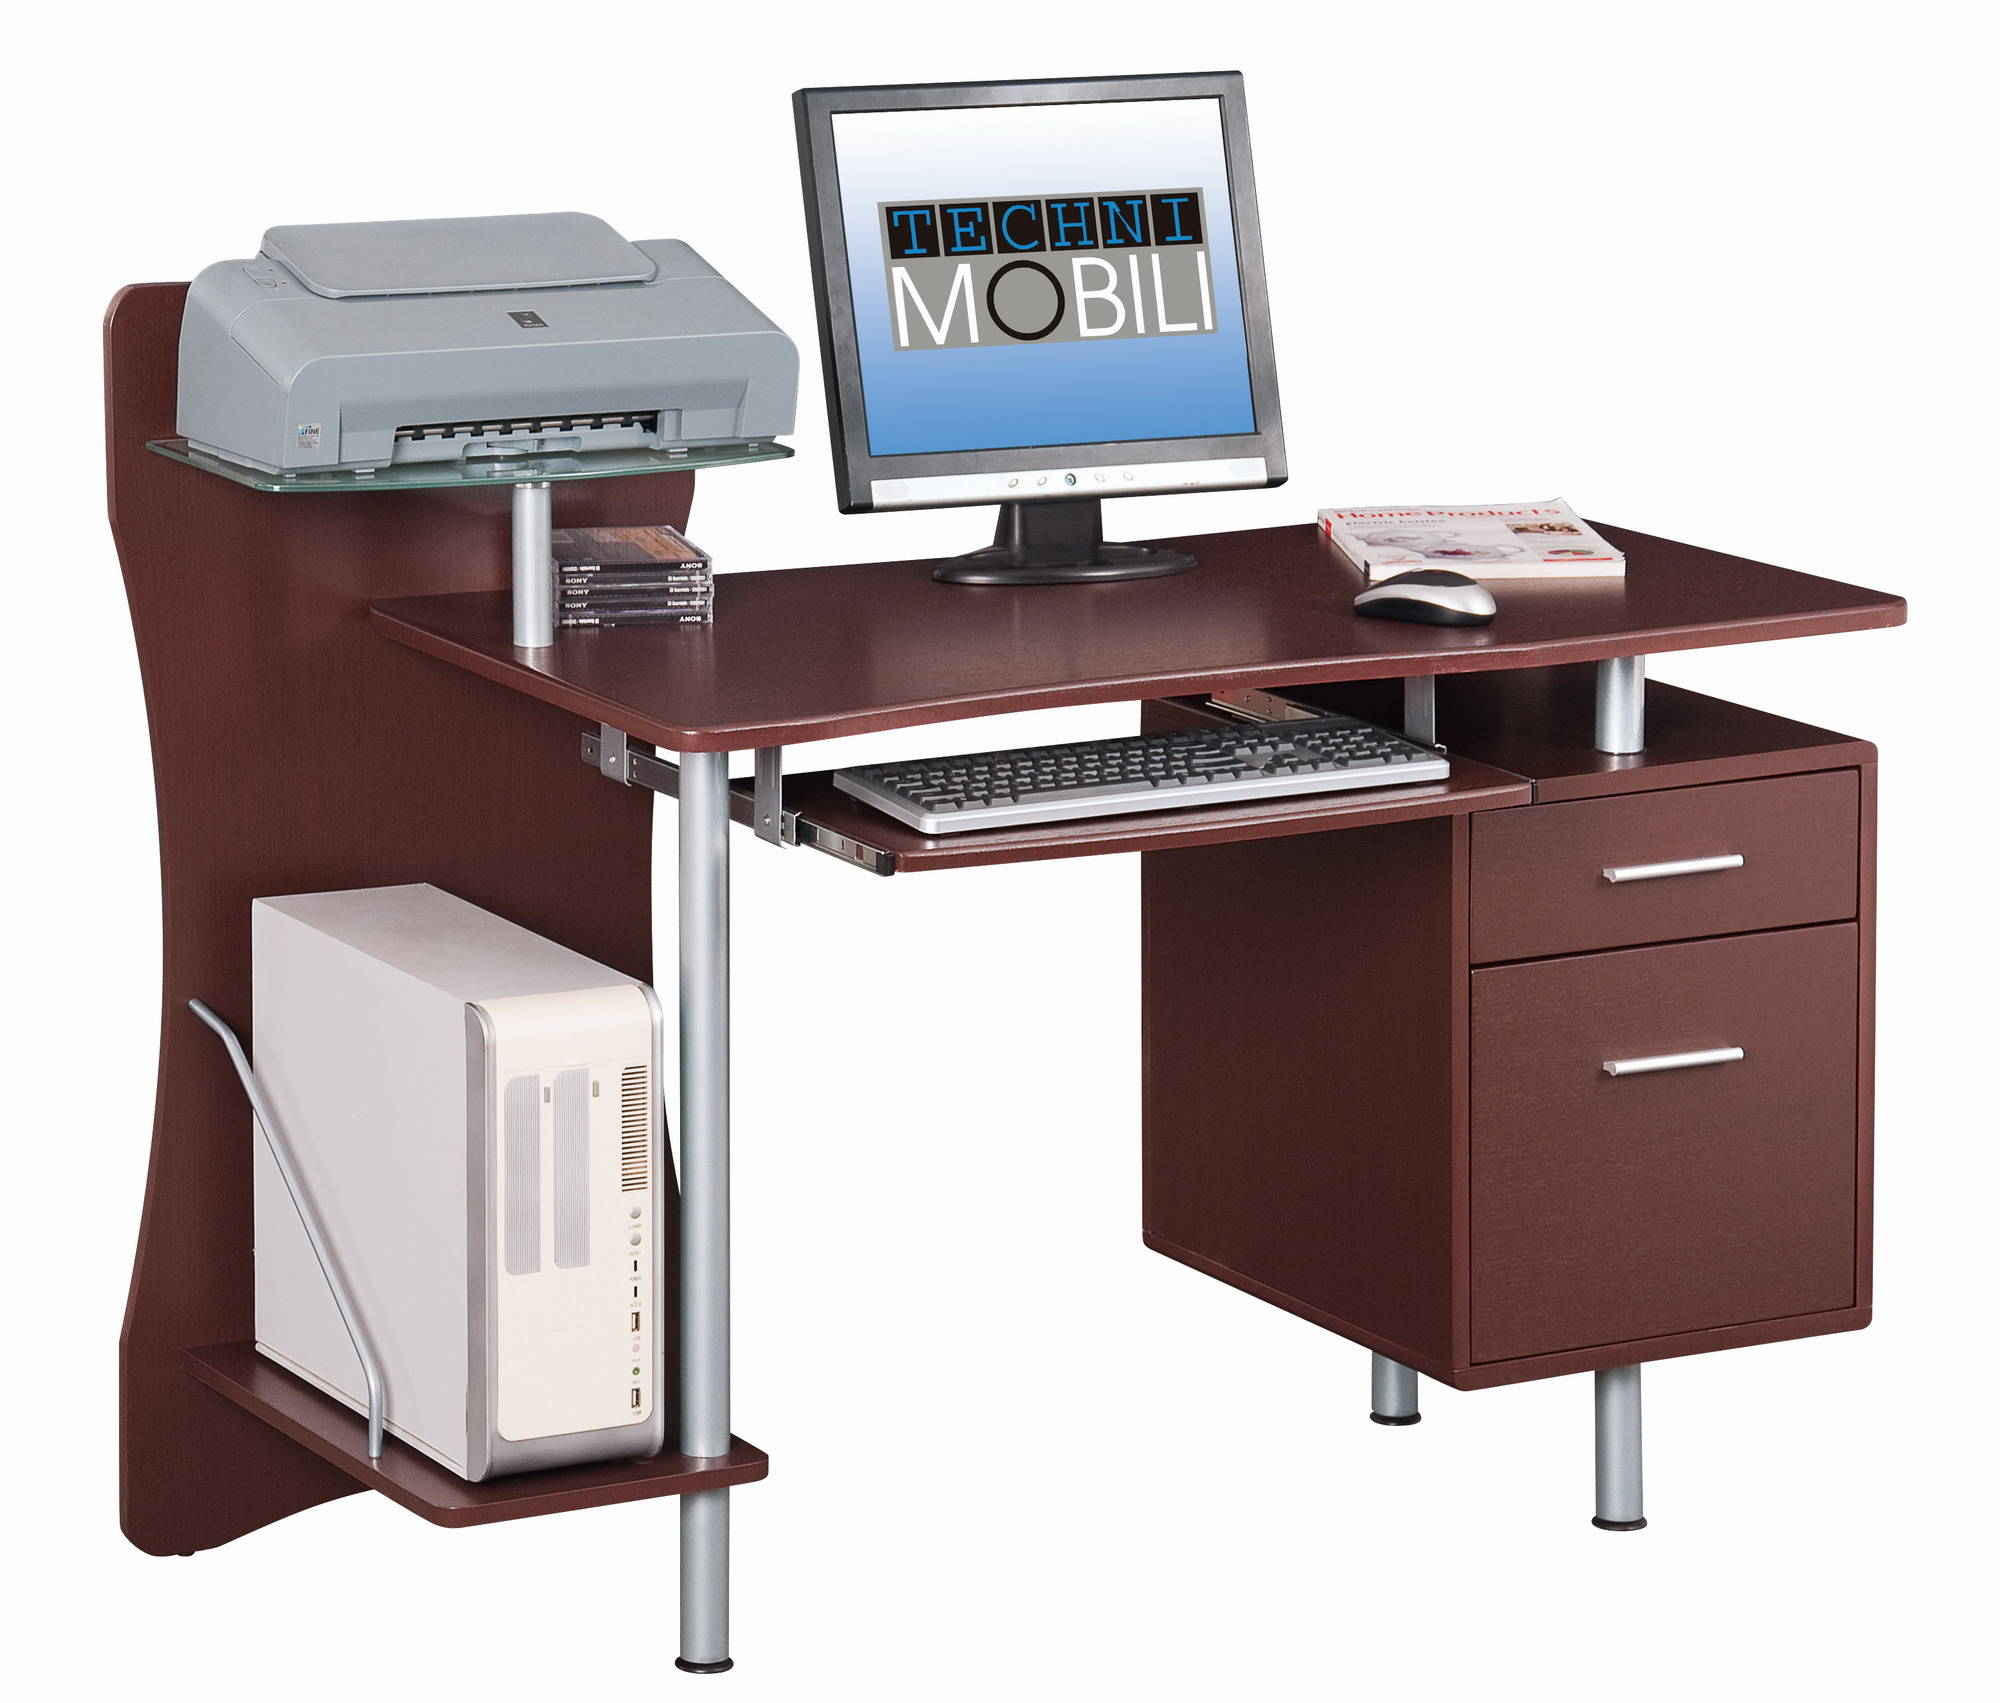 drawers mobili collections workstation with rta desk computer lifestyle tagged complete storage techni gry